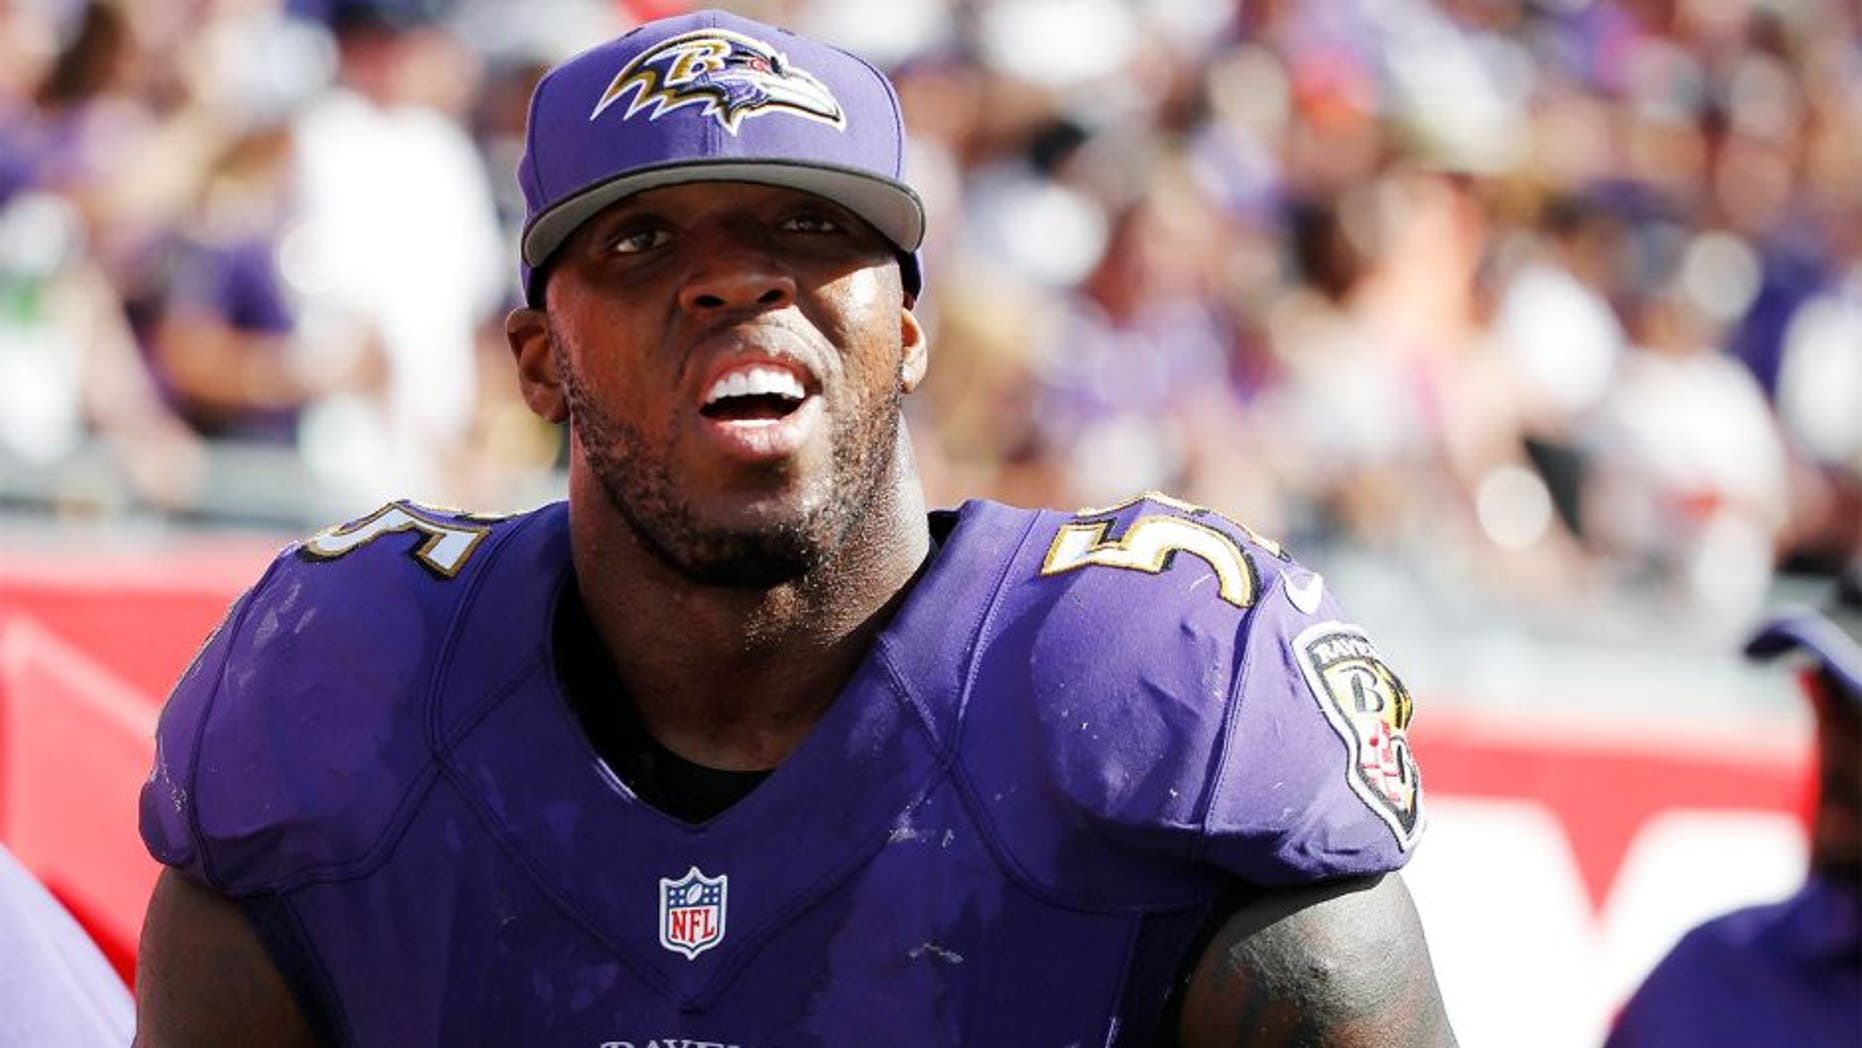 Oct 12, 2014; Tampa, FL, USA; Baltimore Ravens outside linebacker Terrell Suggs (55) against the Tampa Bay Buccaneers during the second half at Raymond James Stadium. Baltimore Ravens defeated the Tampa Bay Buccaneers 48-17. Mandatory Credit: Kim Klement-USA TODAY Sports